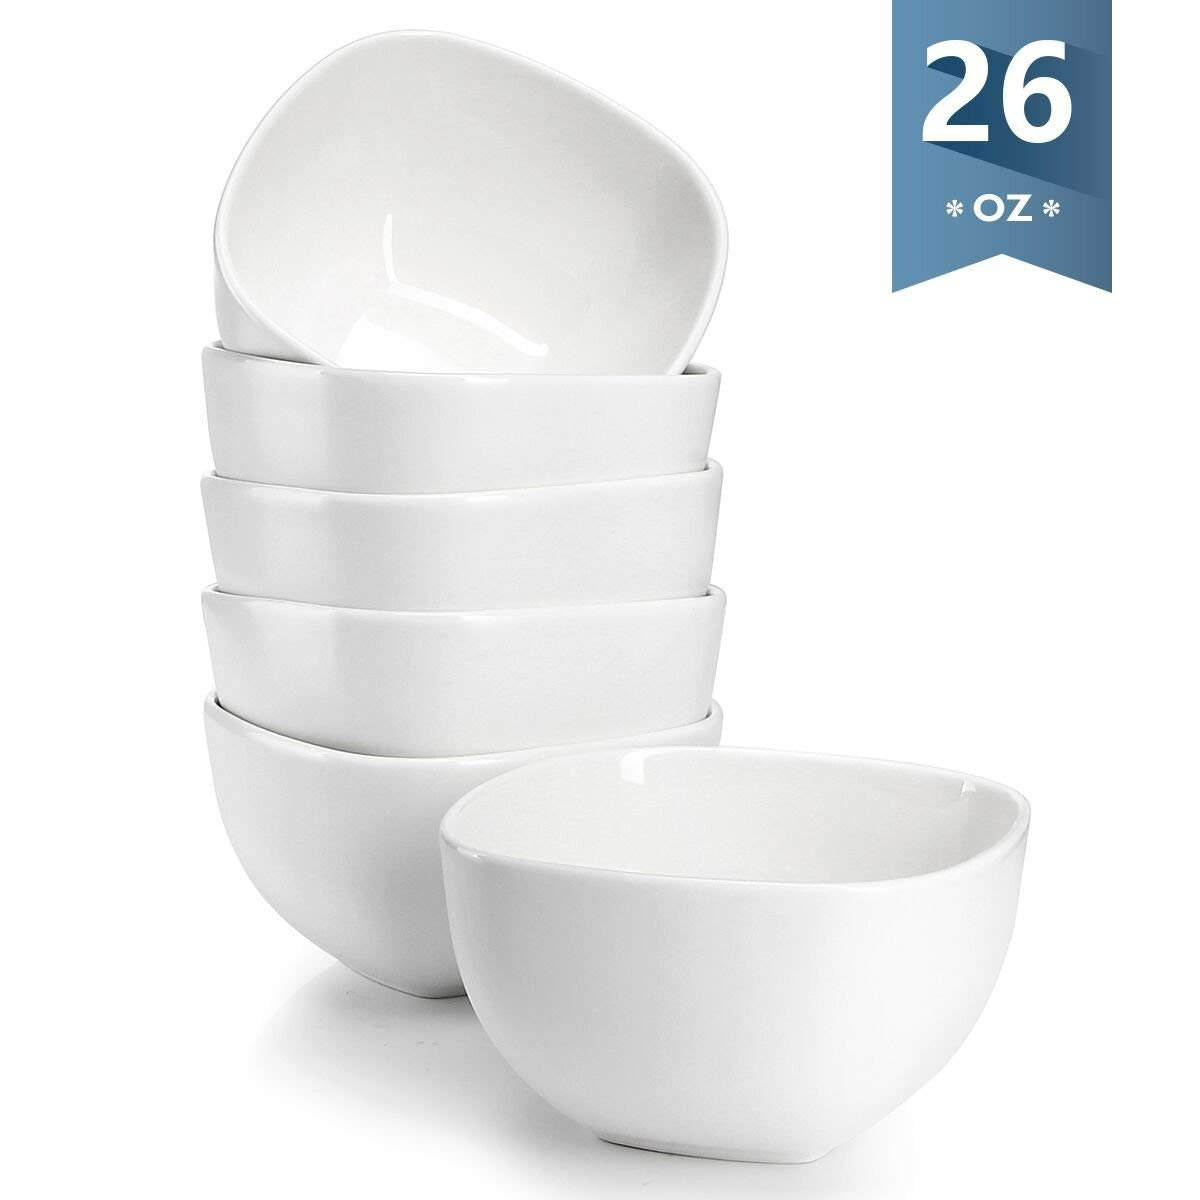 Sweese 1304 Porcelain Square Bowl Set - 26 Ounce Deep and Microwavable for Cereal, Soup and Fruit - Set of 6, White